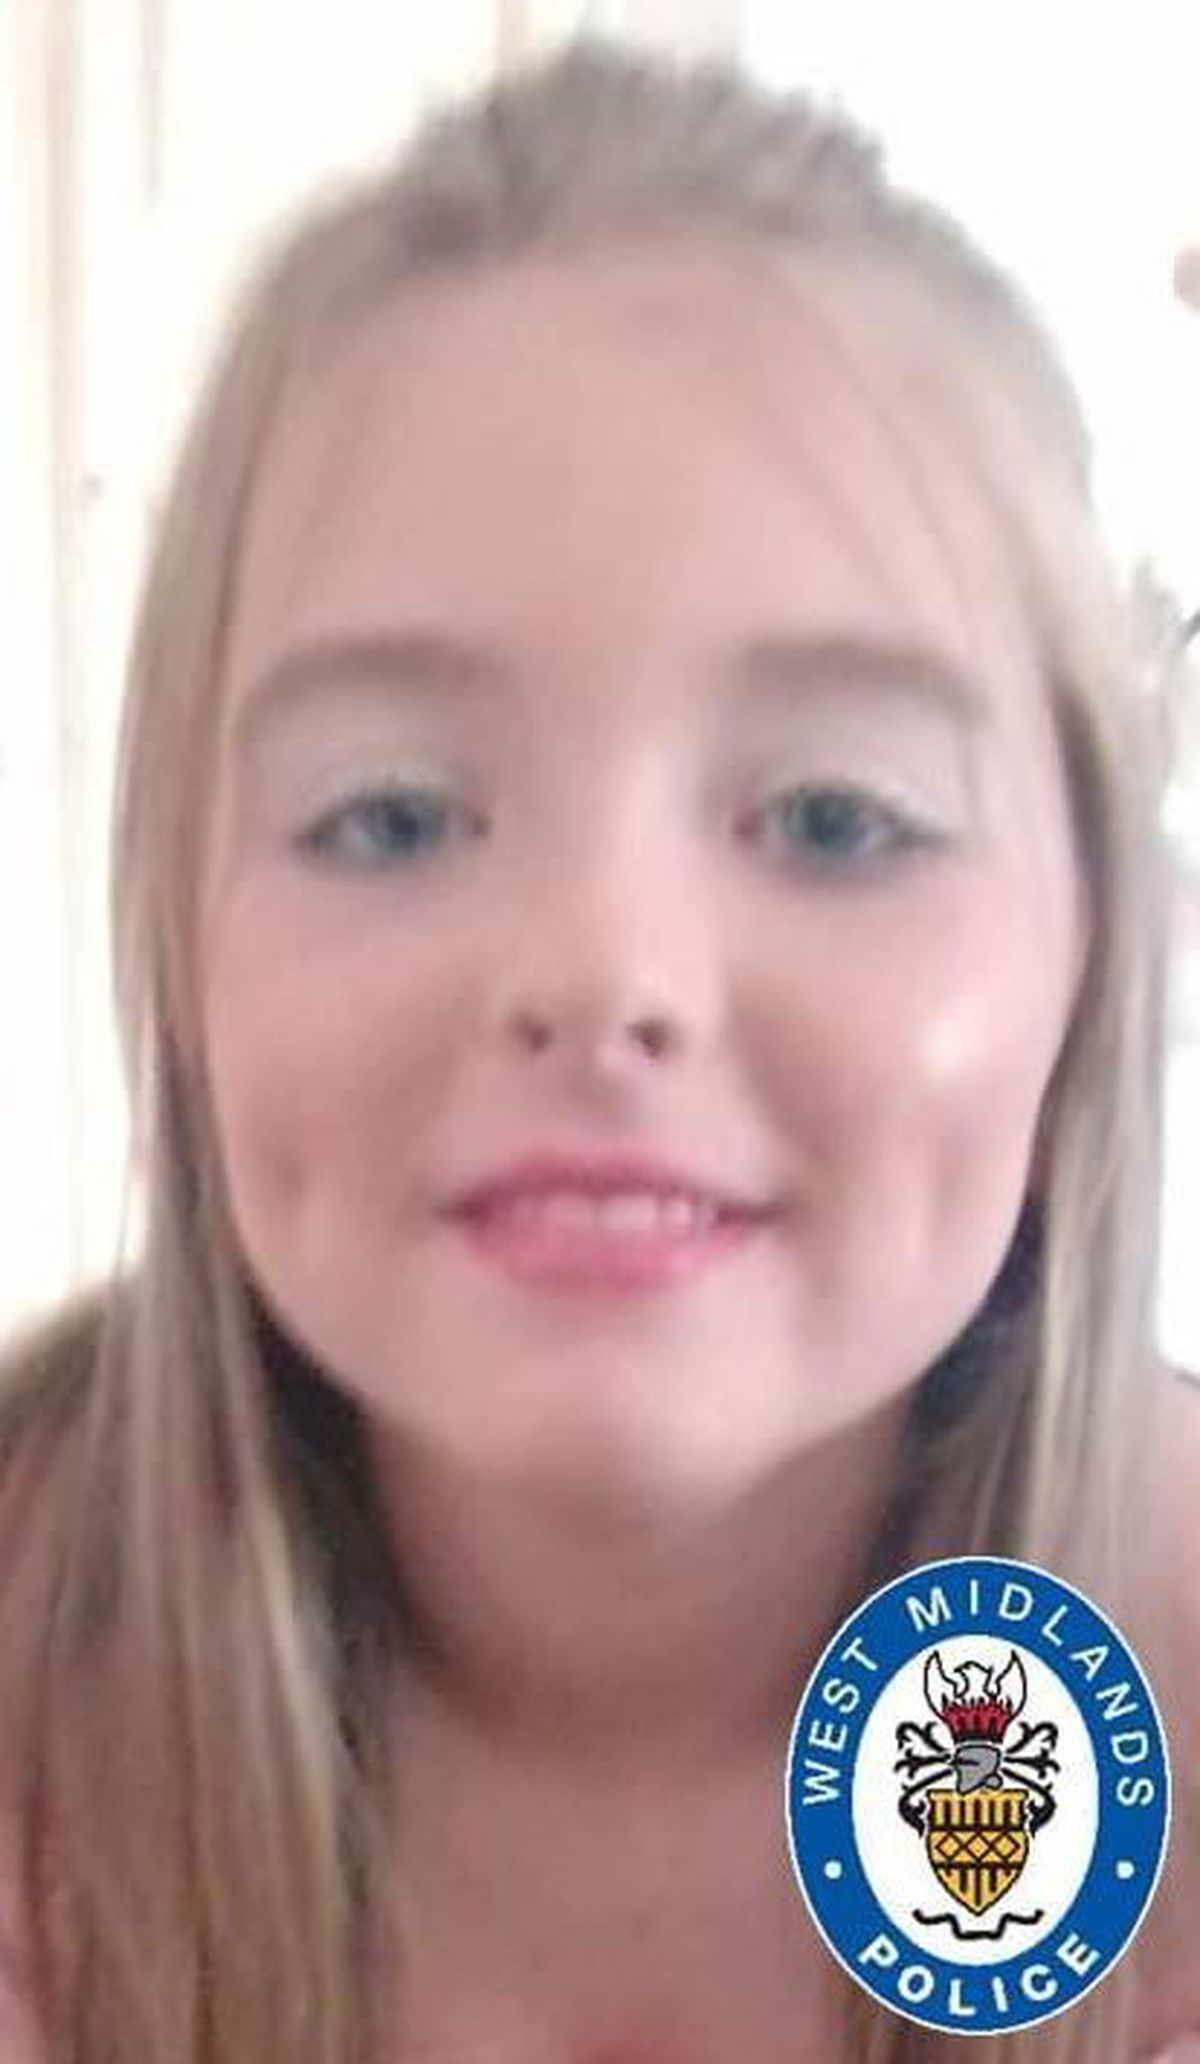 Destiny Bradbury has been missing since leaving her home on Friday, June 18 (Image by West Midlands Police)